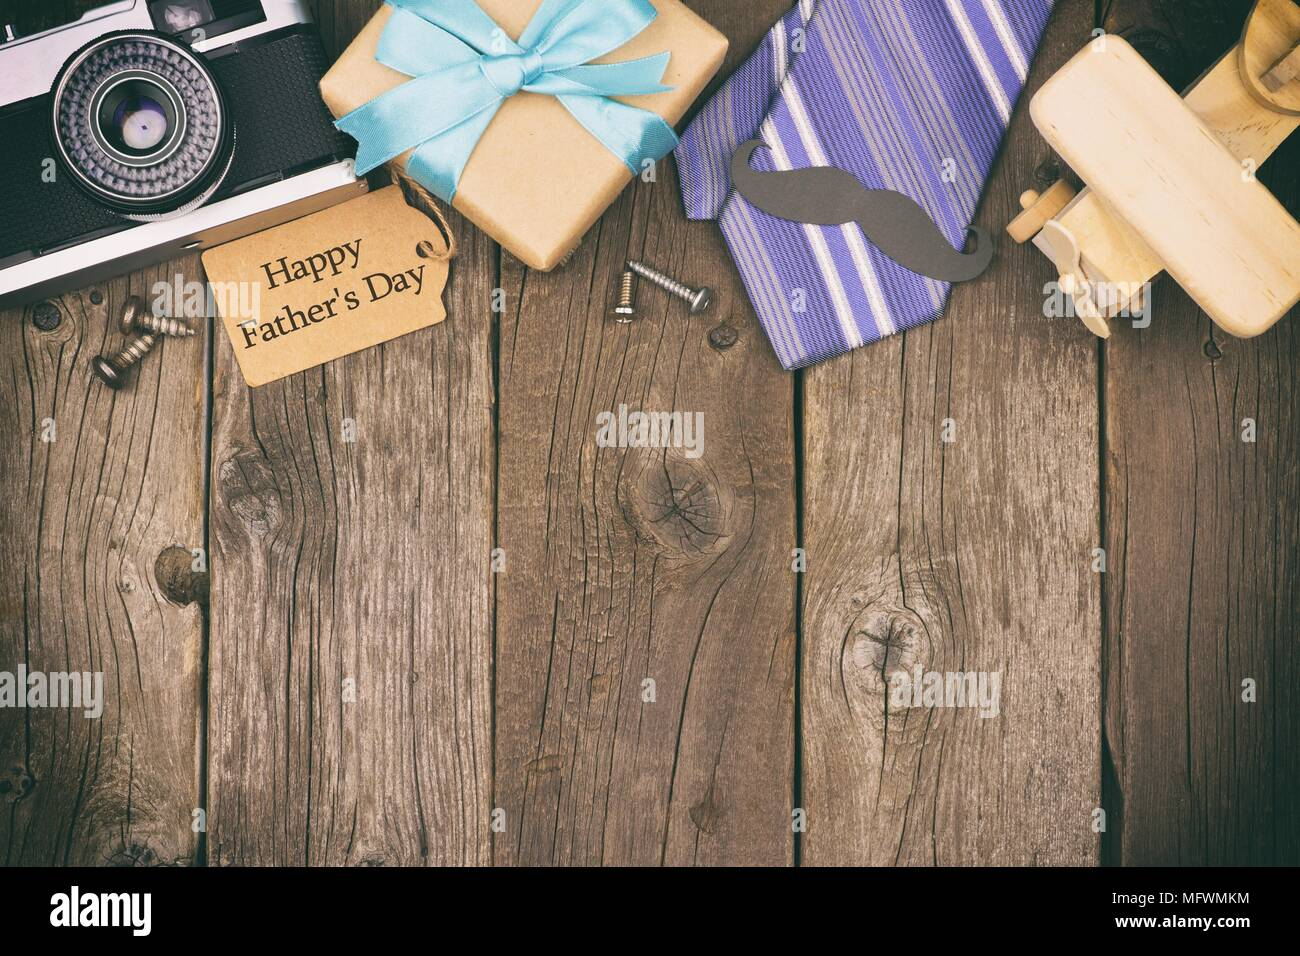 Happy Fathers Day Gift Tag With Top Border Of Gifts Ties And Decor On A Rustic Wood Background View Vintage Styling